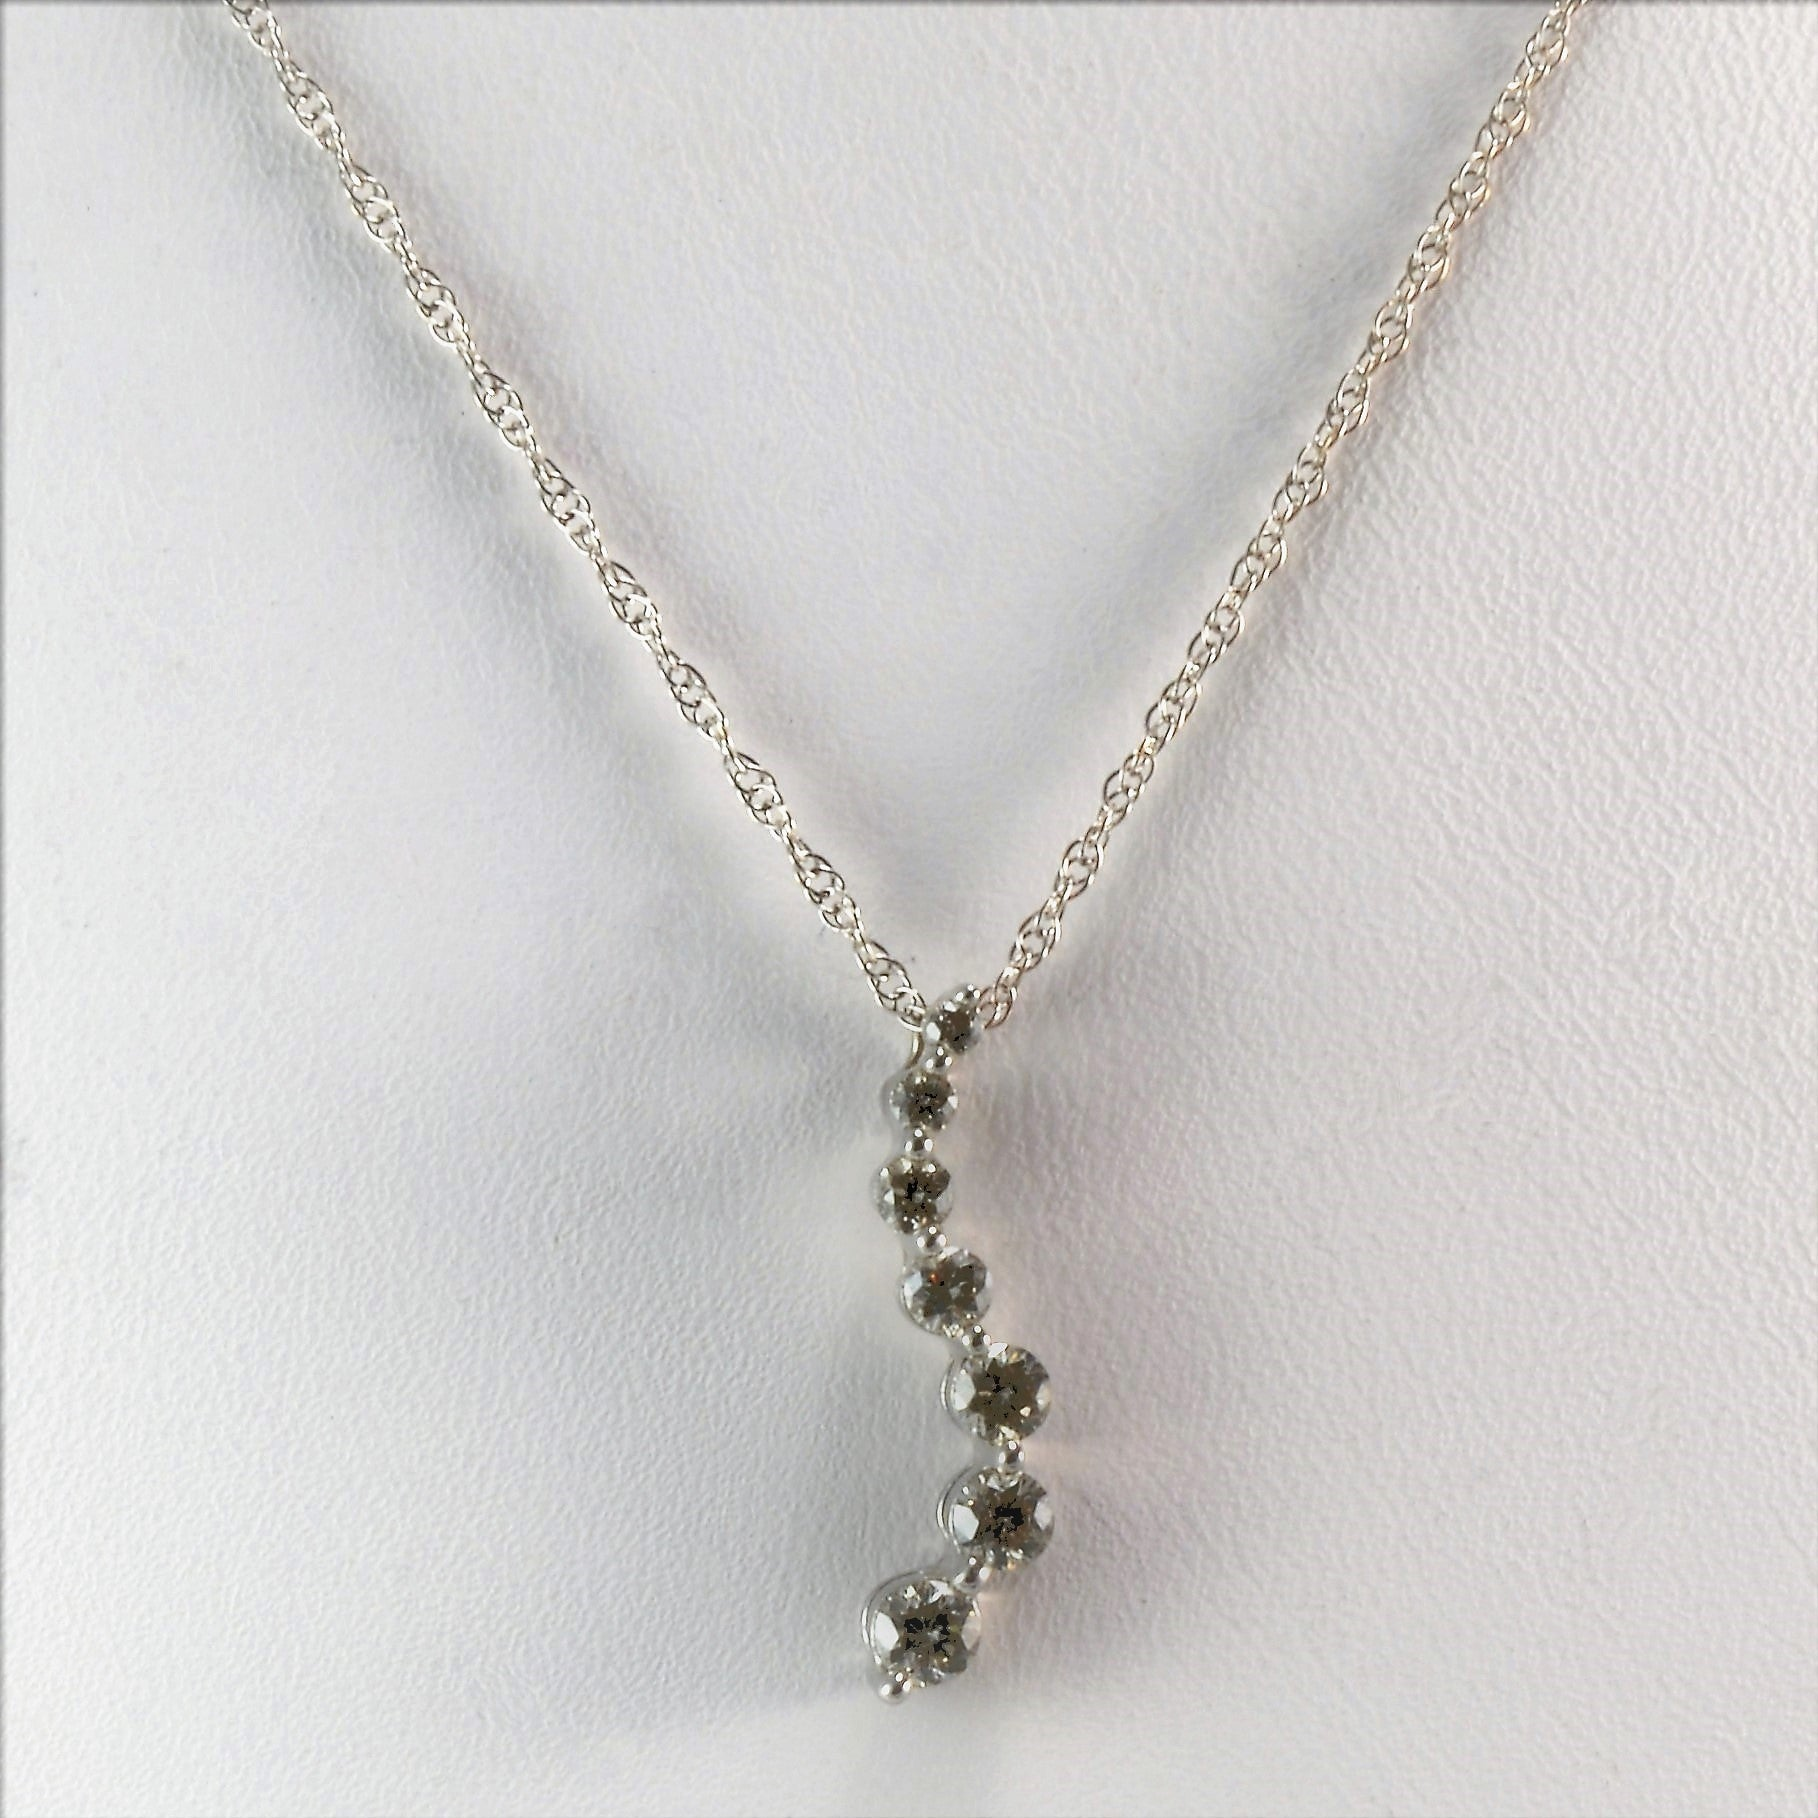 Elegant Diamond Journey Necklace | 0.40 ctw, 18"